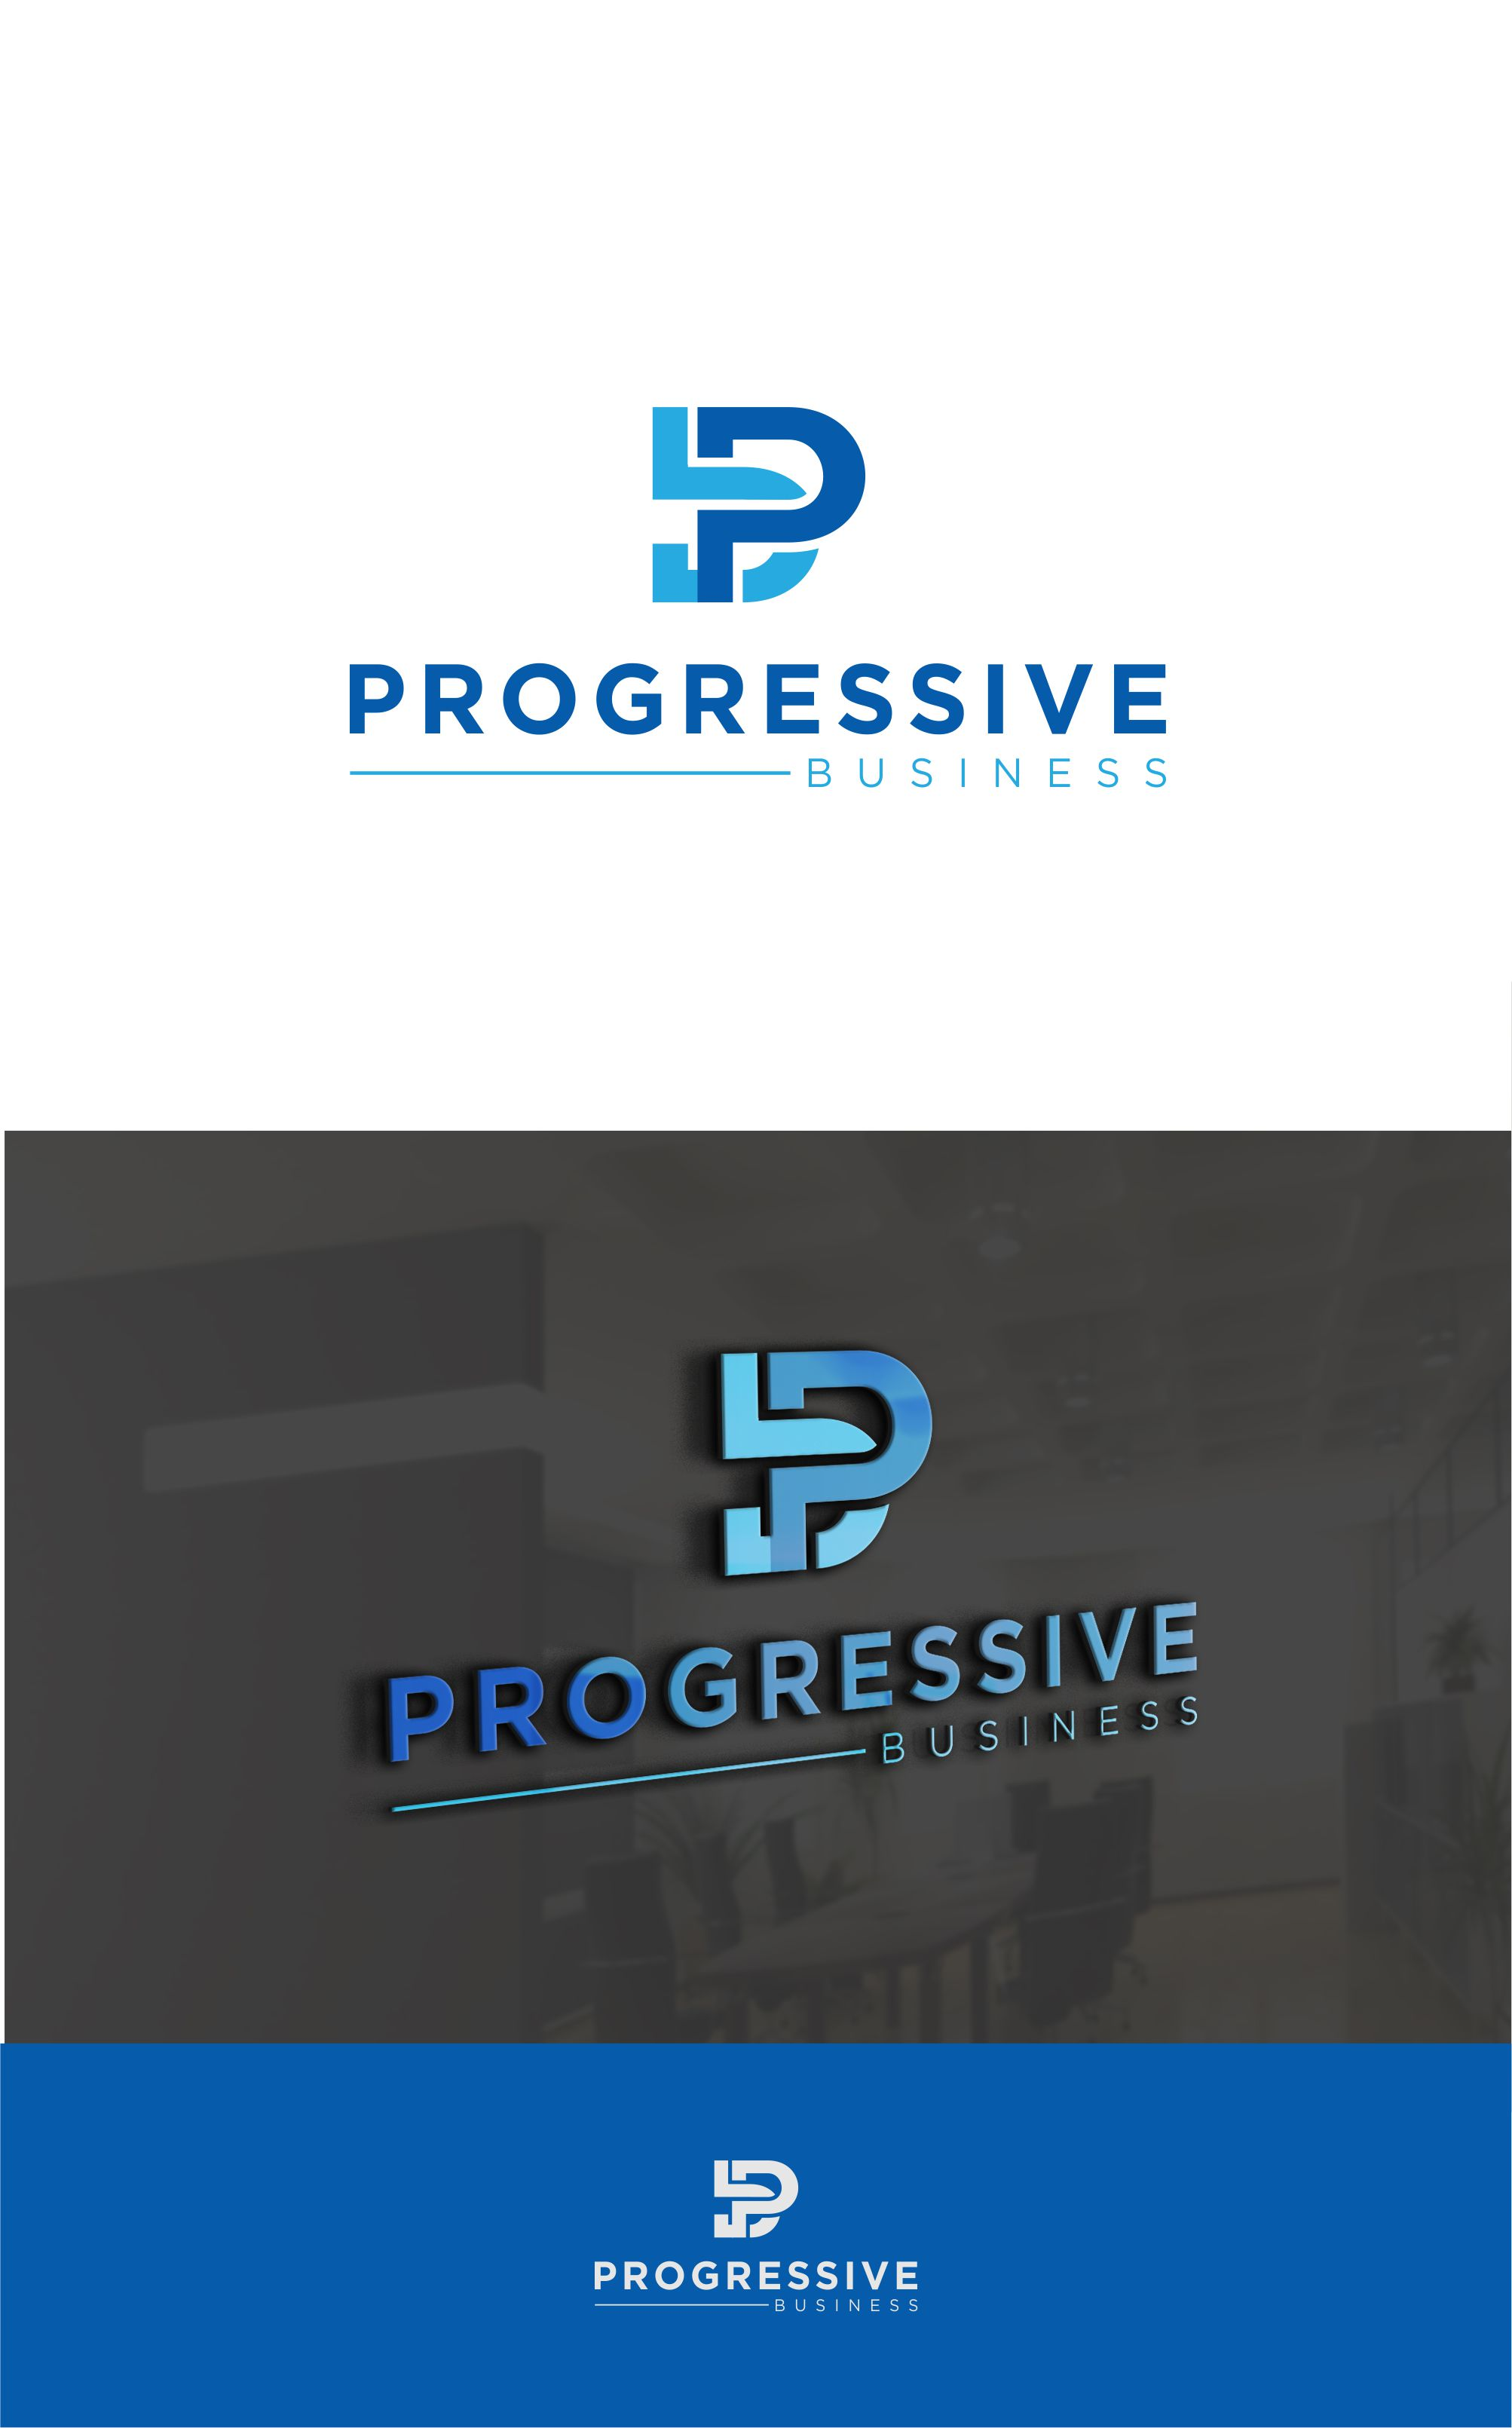 Logo Design by Raymond Garcia - Entry No. 194 in the Logo Design Contest Captivating Logo Design for Progressive Business.